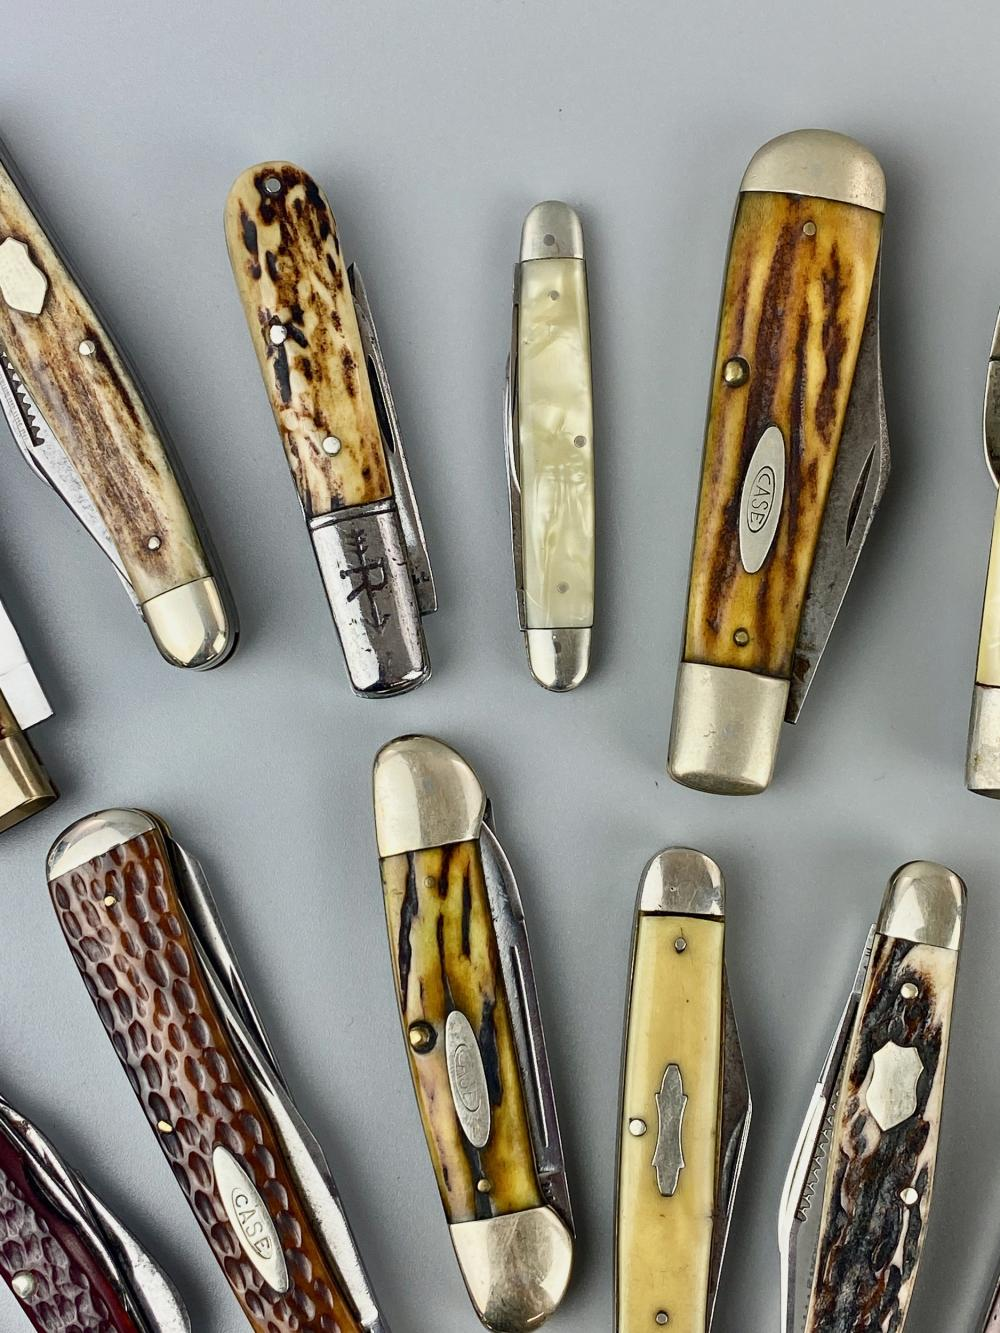 Charles Cotterill's Pocket Knife Collection